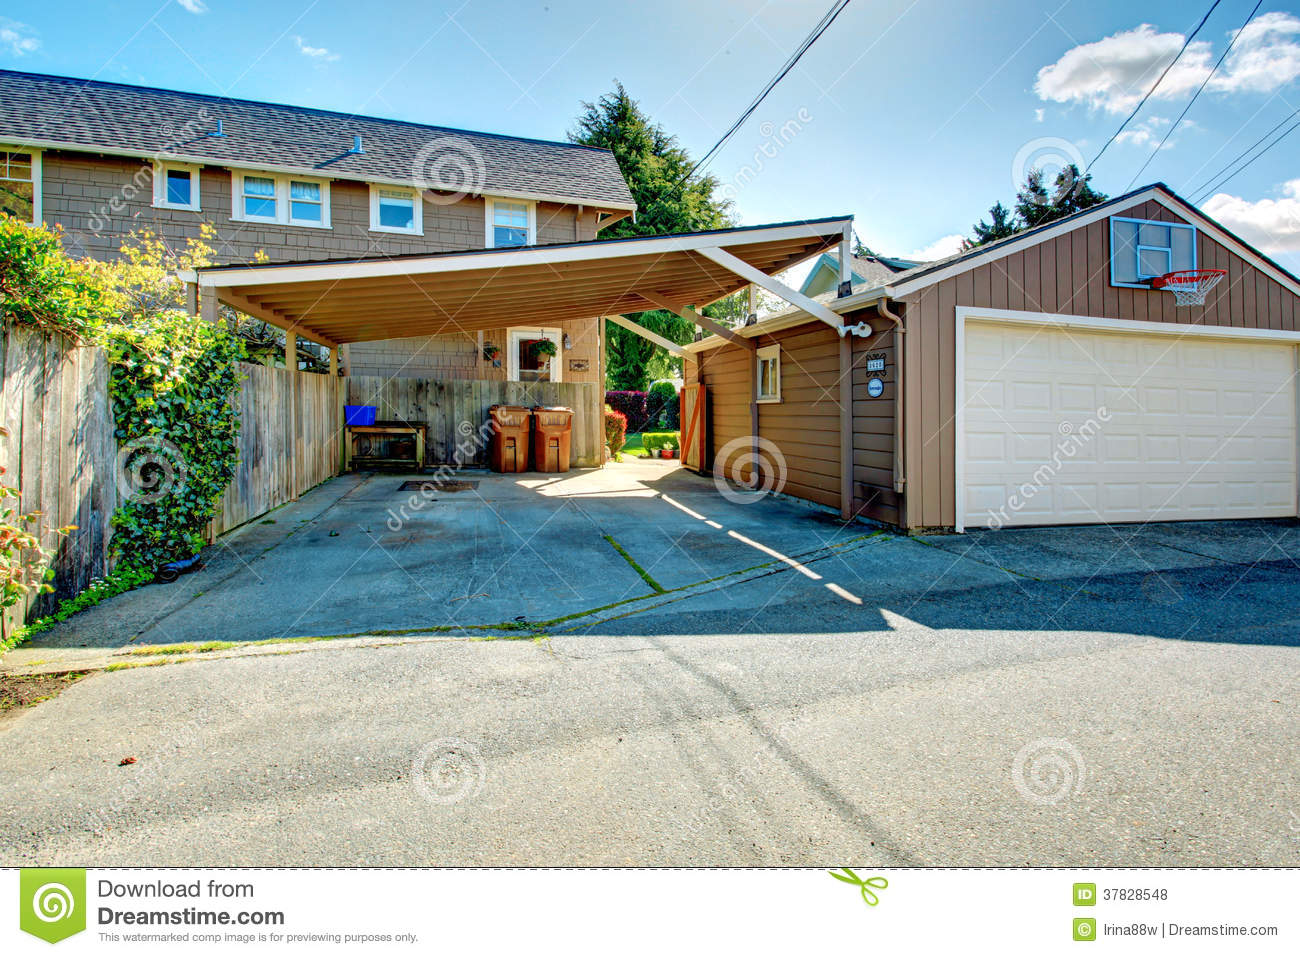 backyard with garage and basketball court royalty free stock